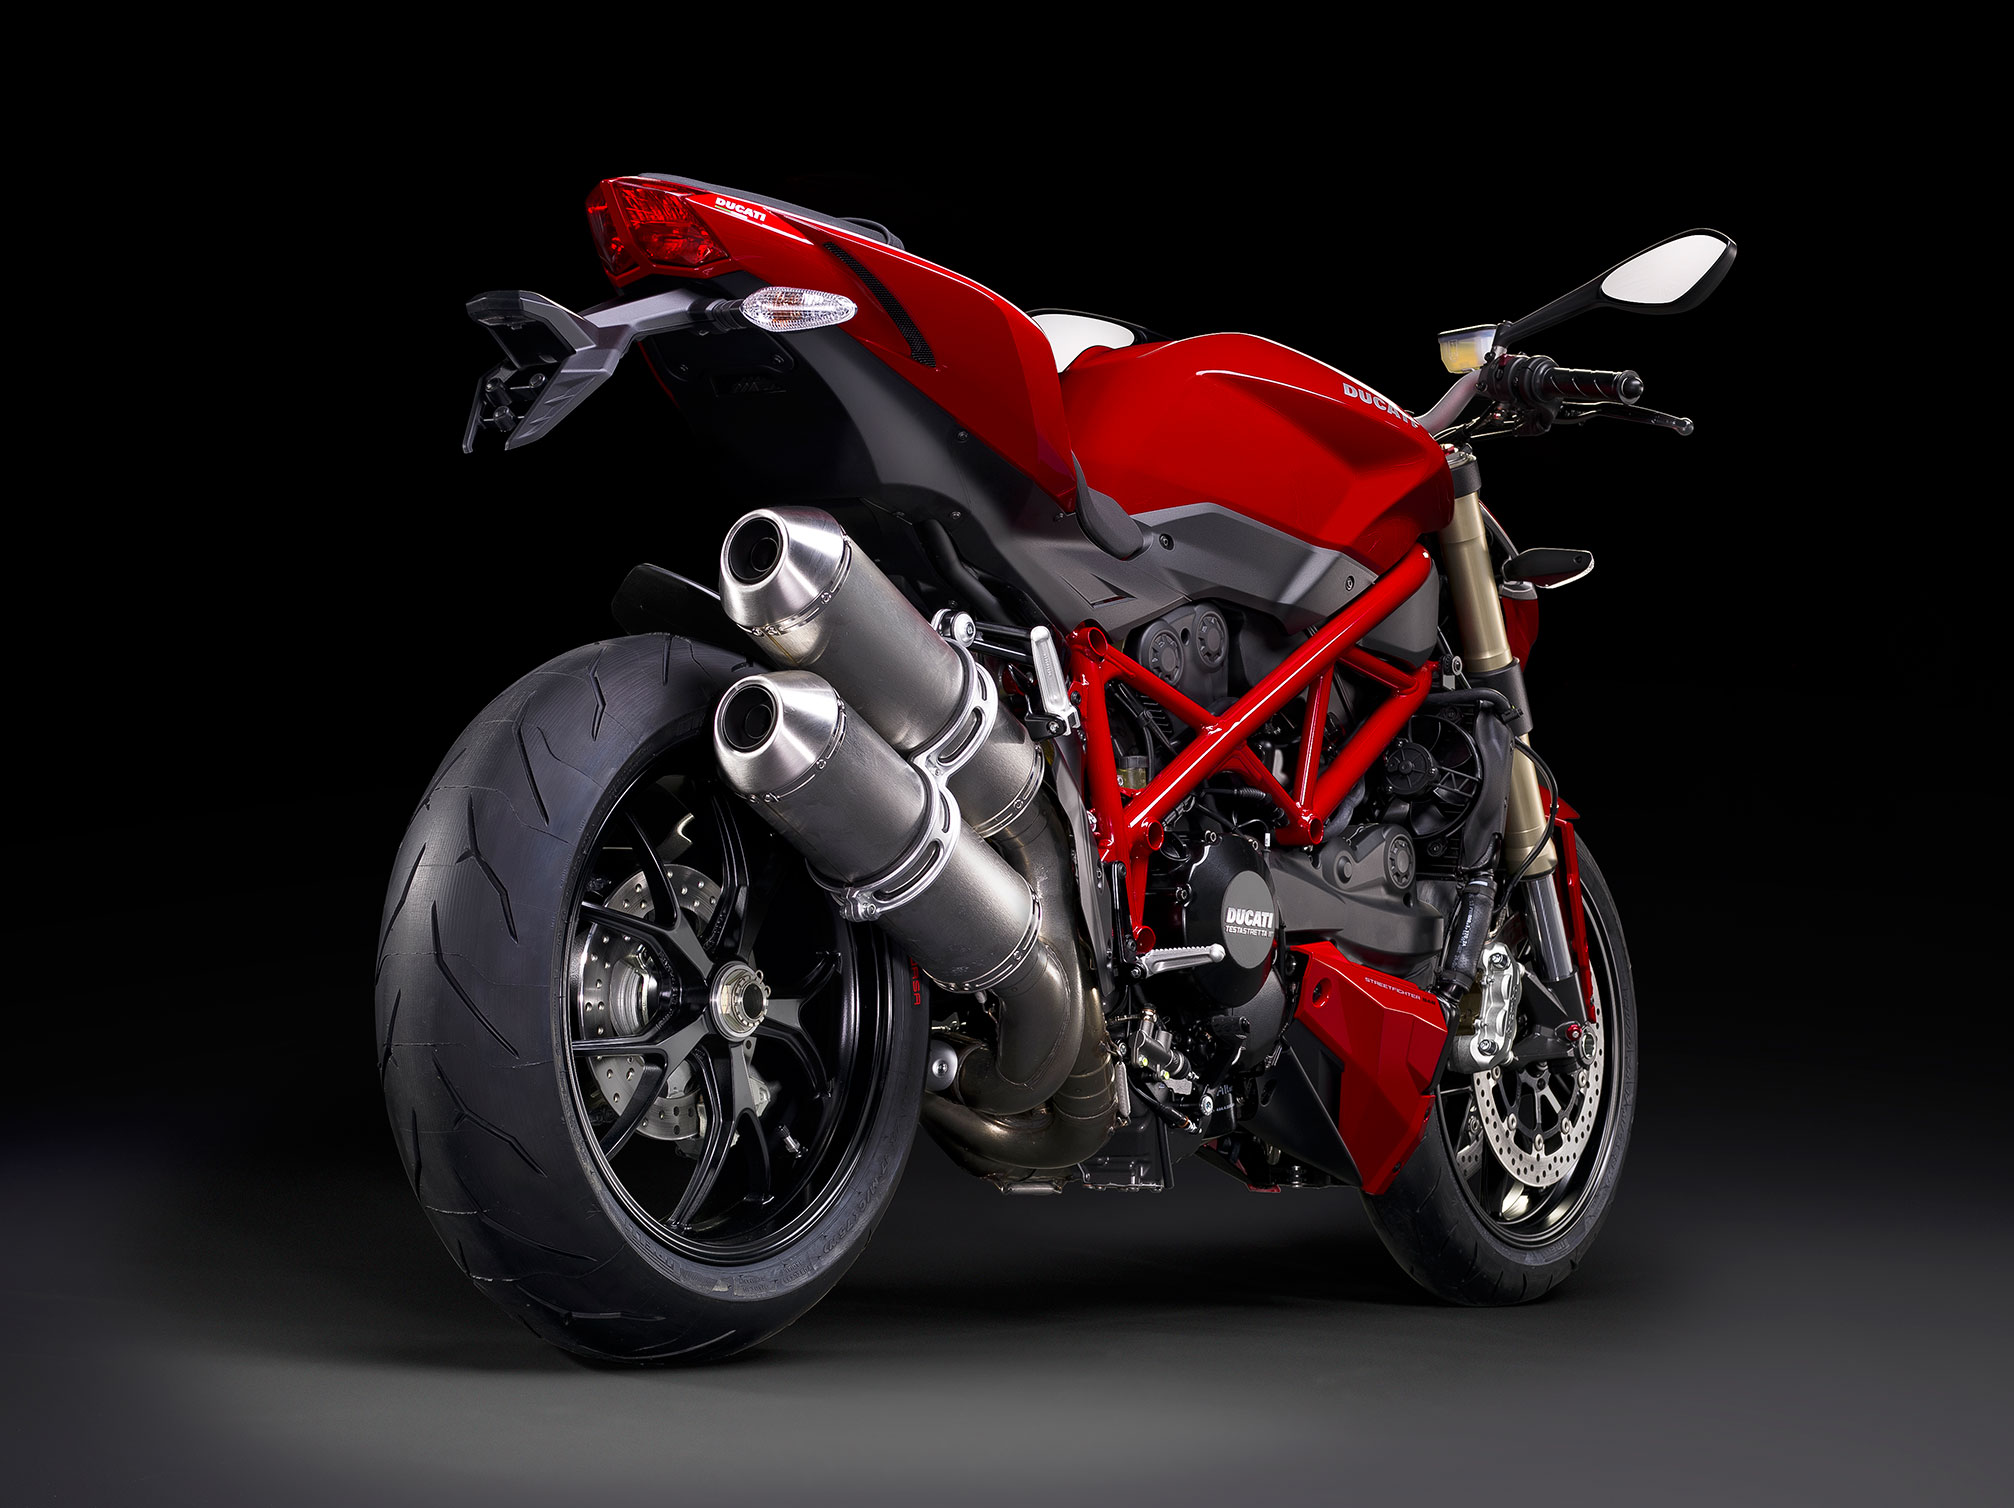 2014 Ducati Streetfighter 848 Review